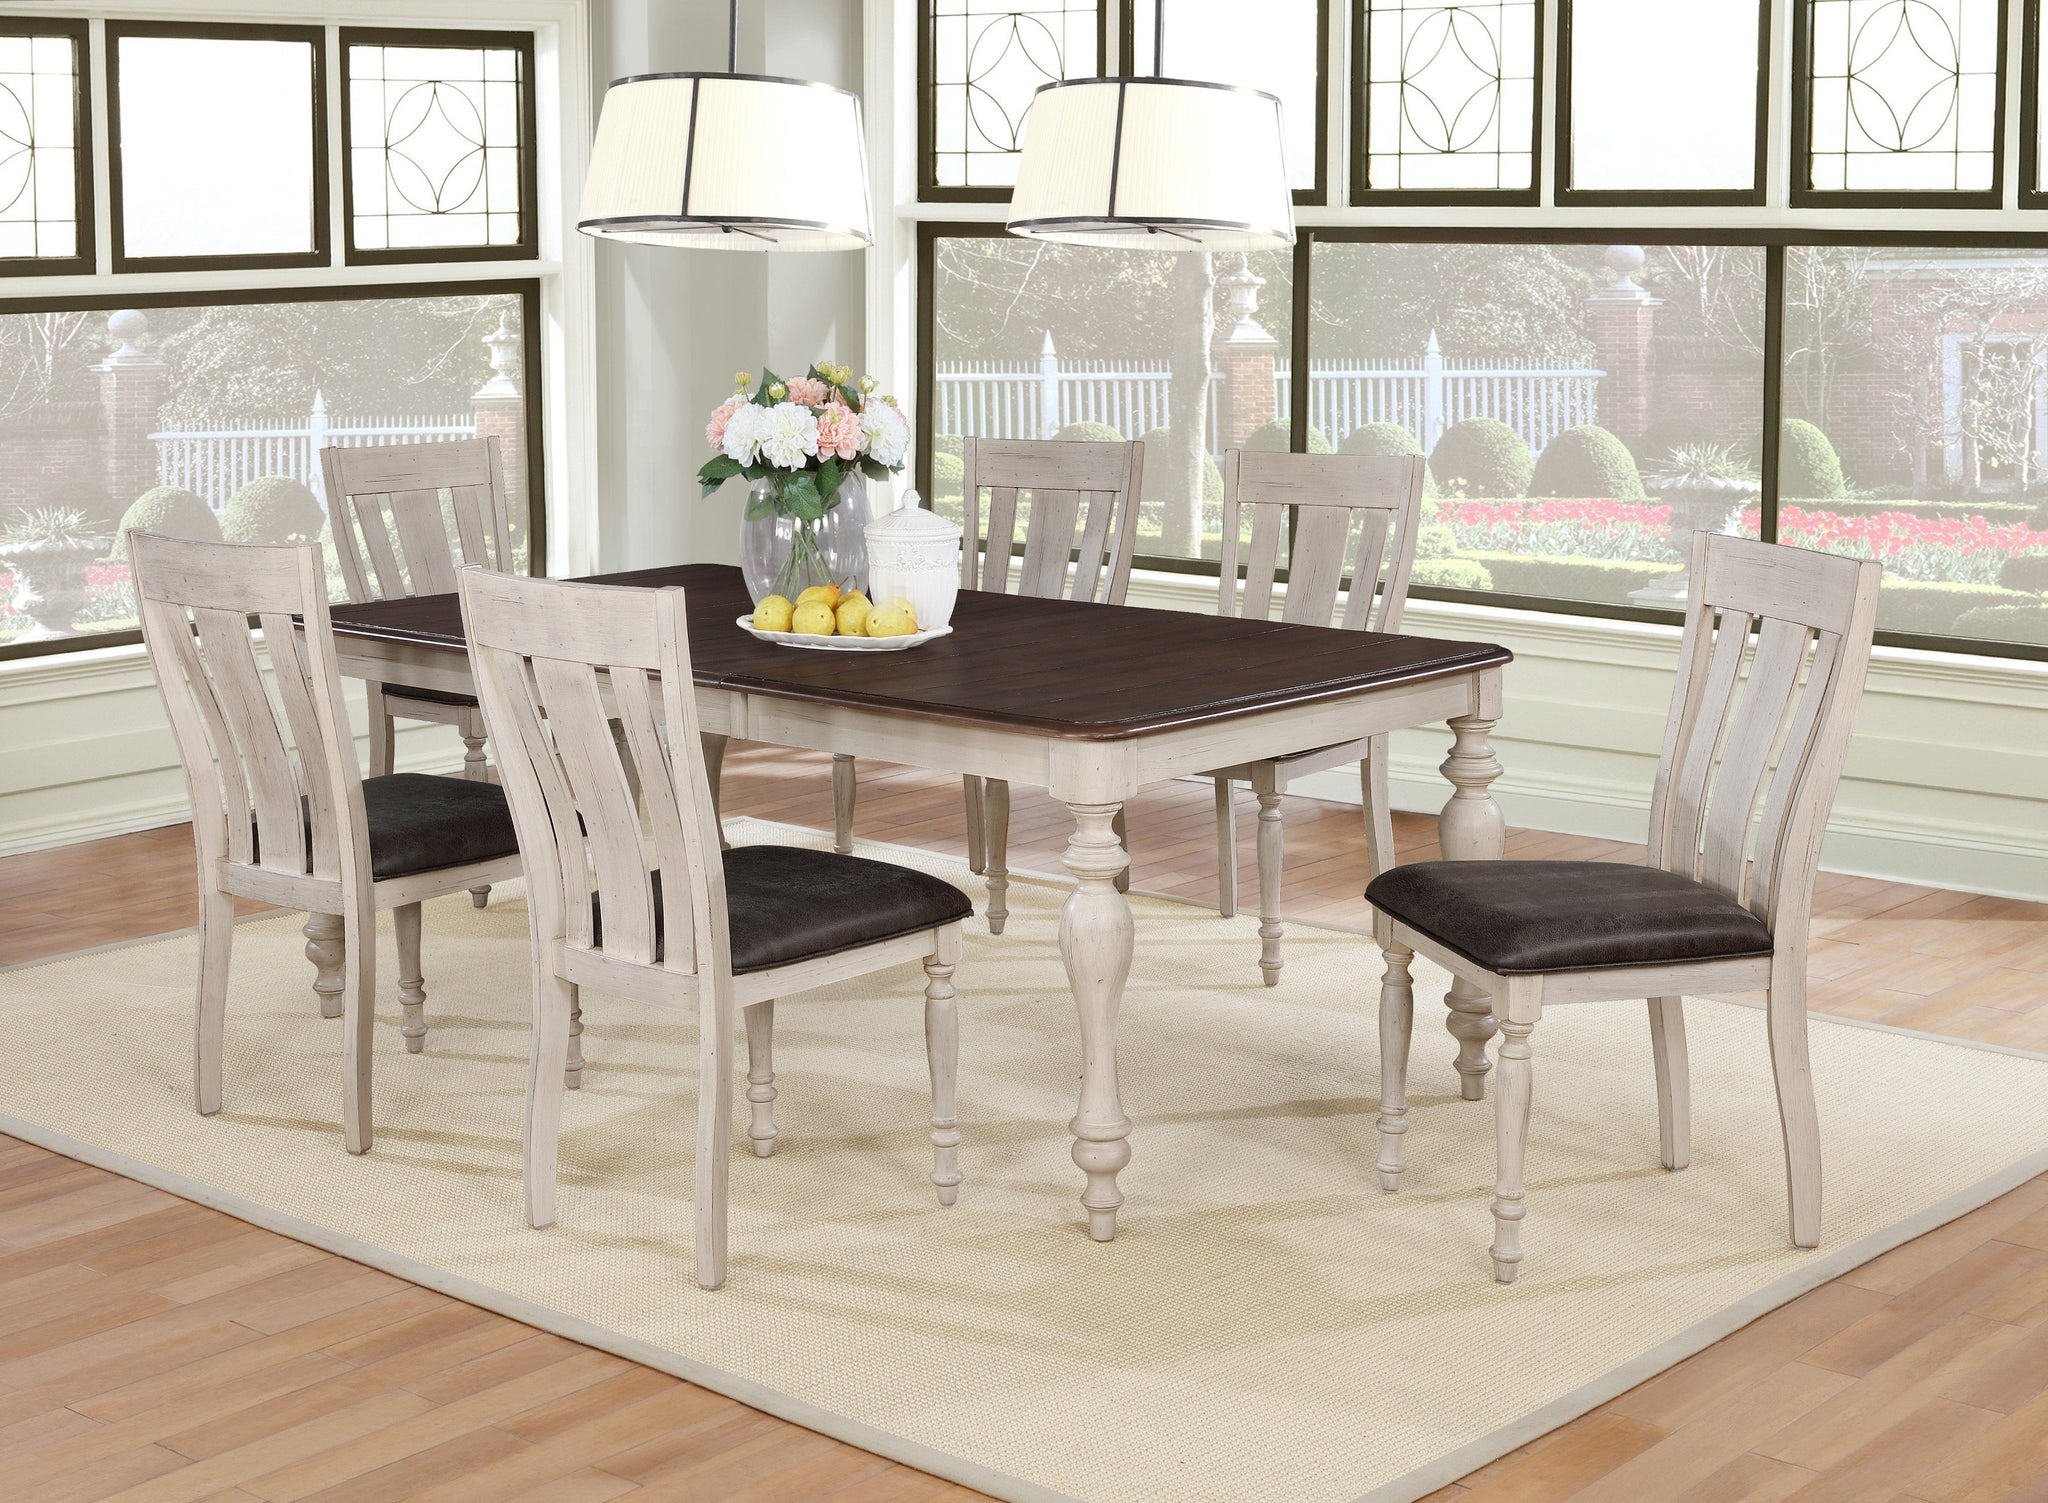 Arch Weathered Oak Dining Set: Table with Extension Leaf, Six Chairs